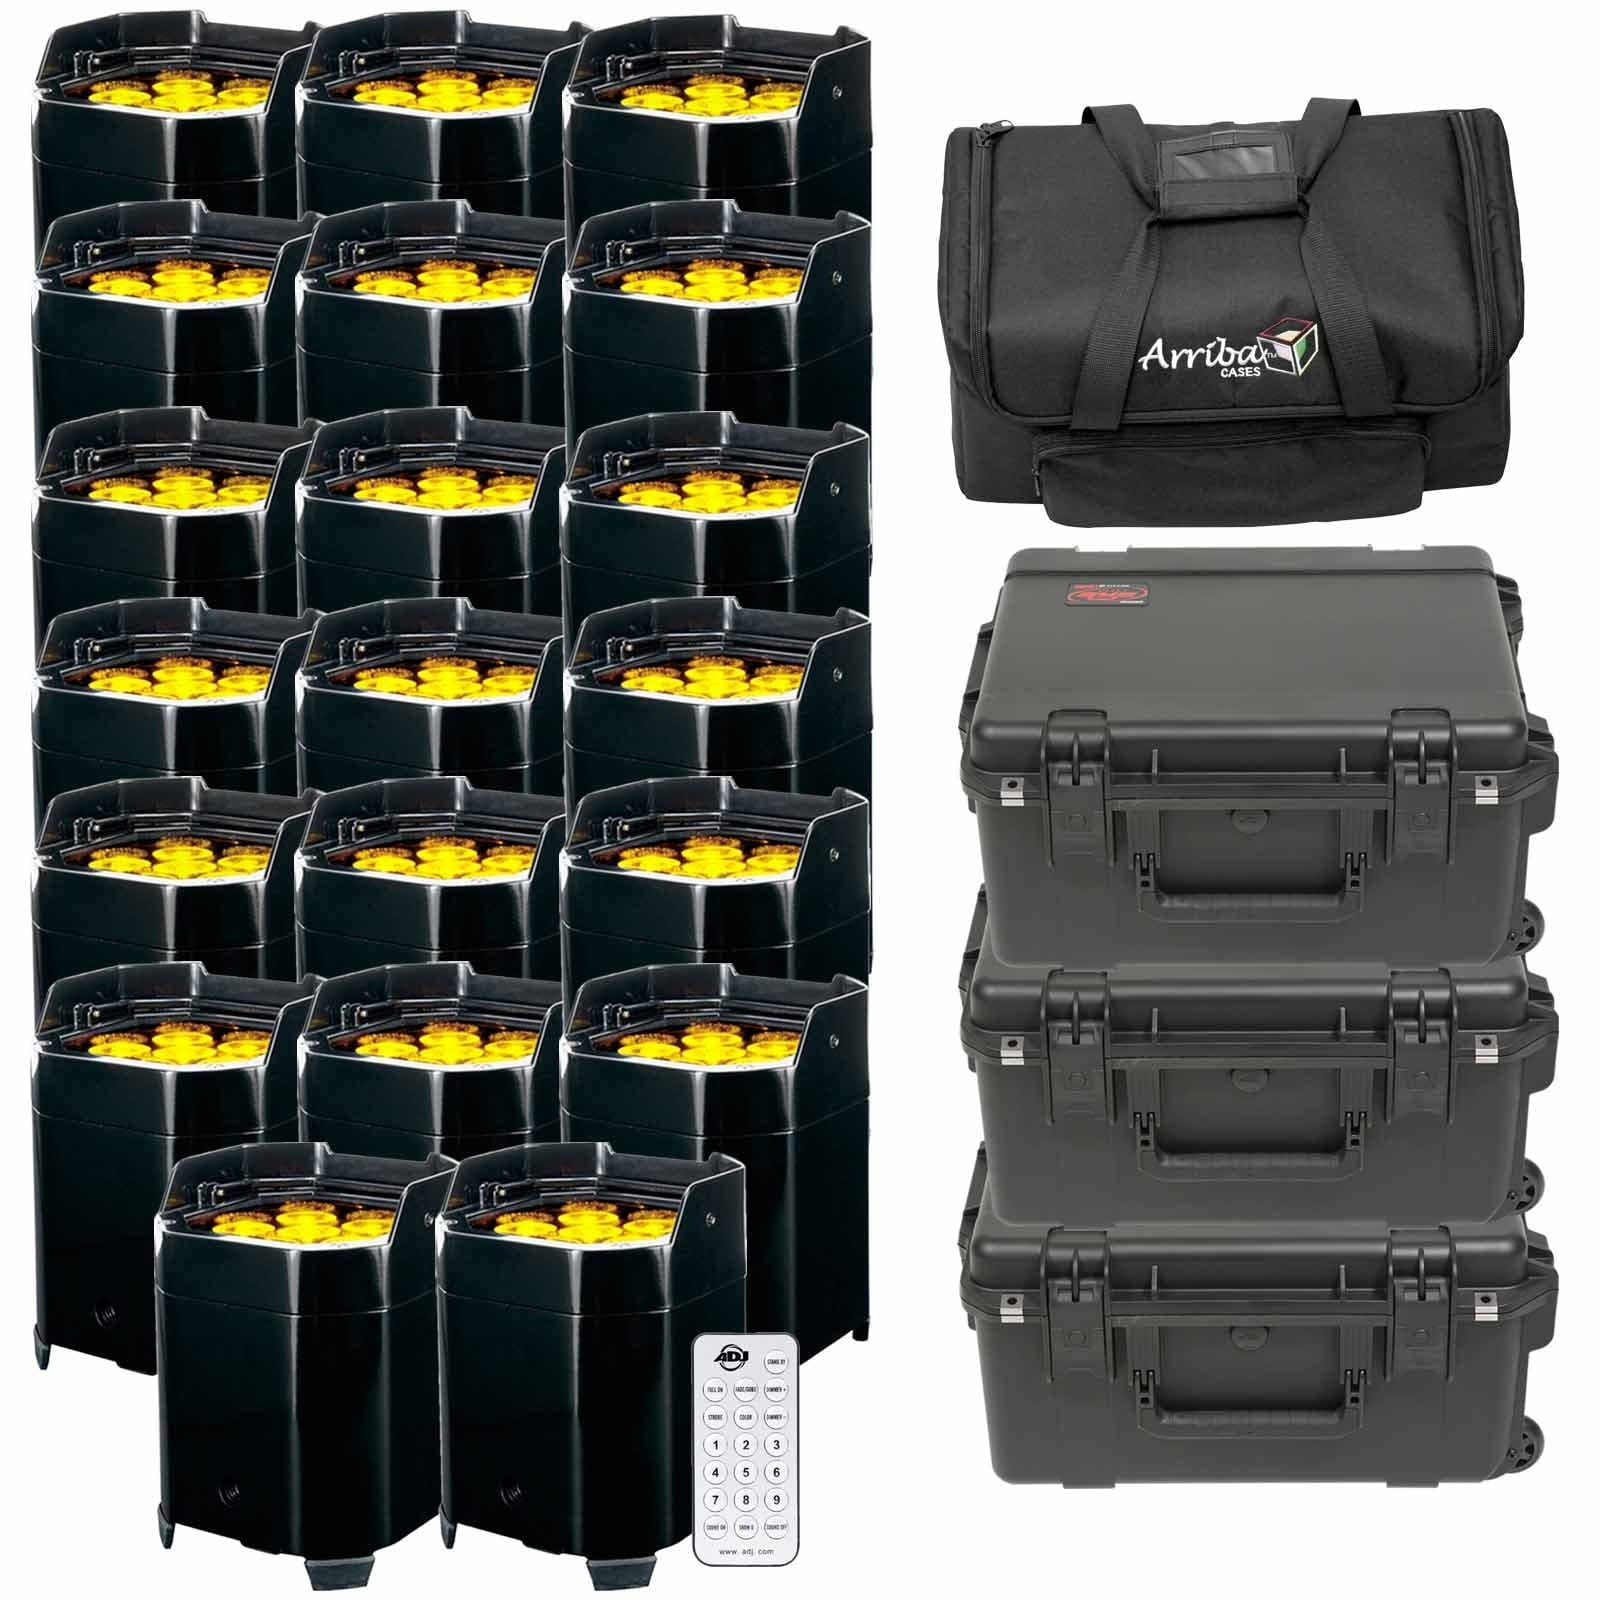 20-american-dj-element-qa-battery-powered-wireless-led-pars-package-7c3.jpg